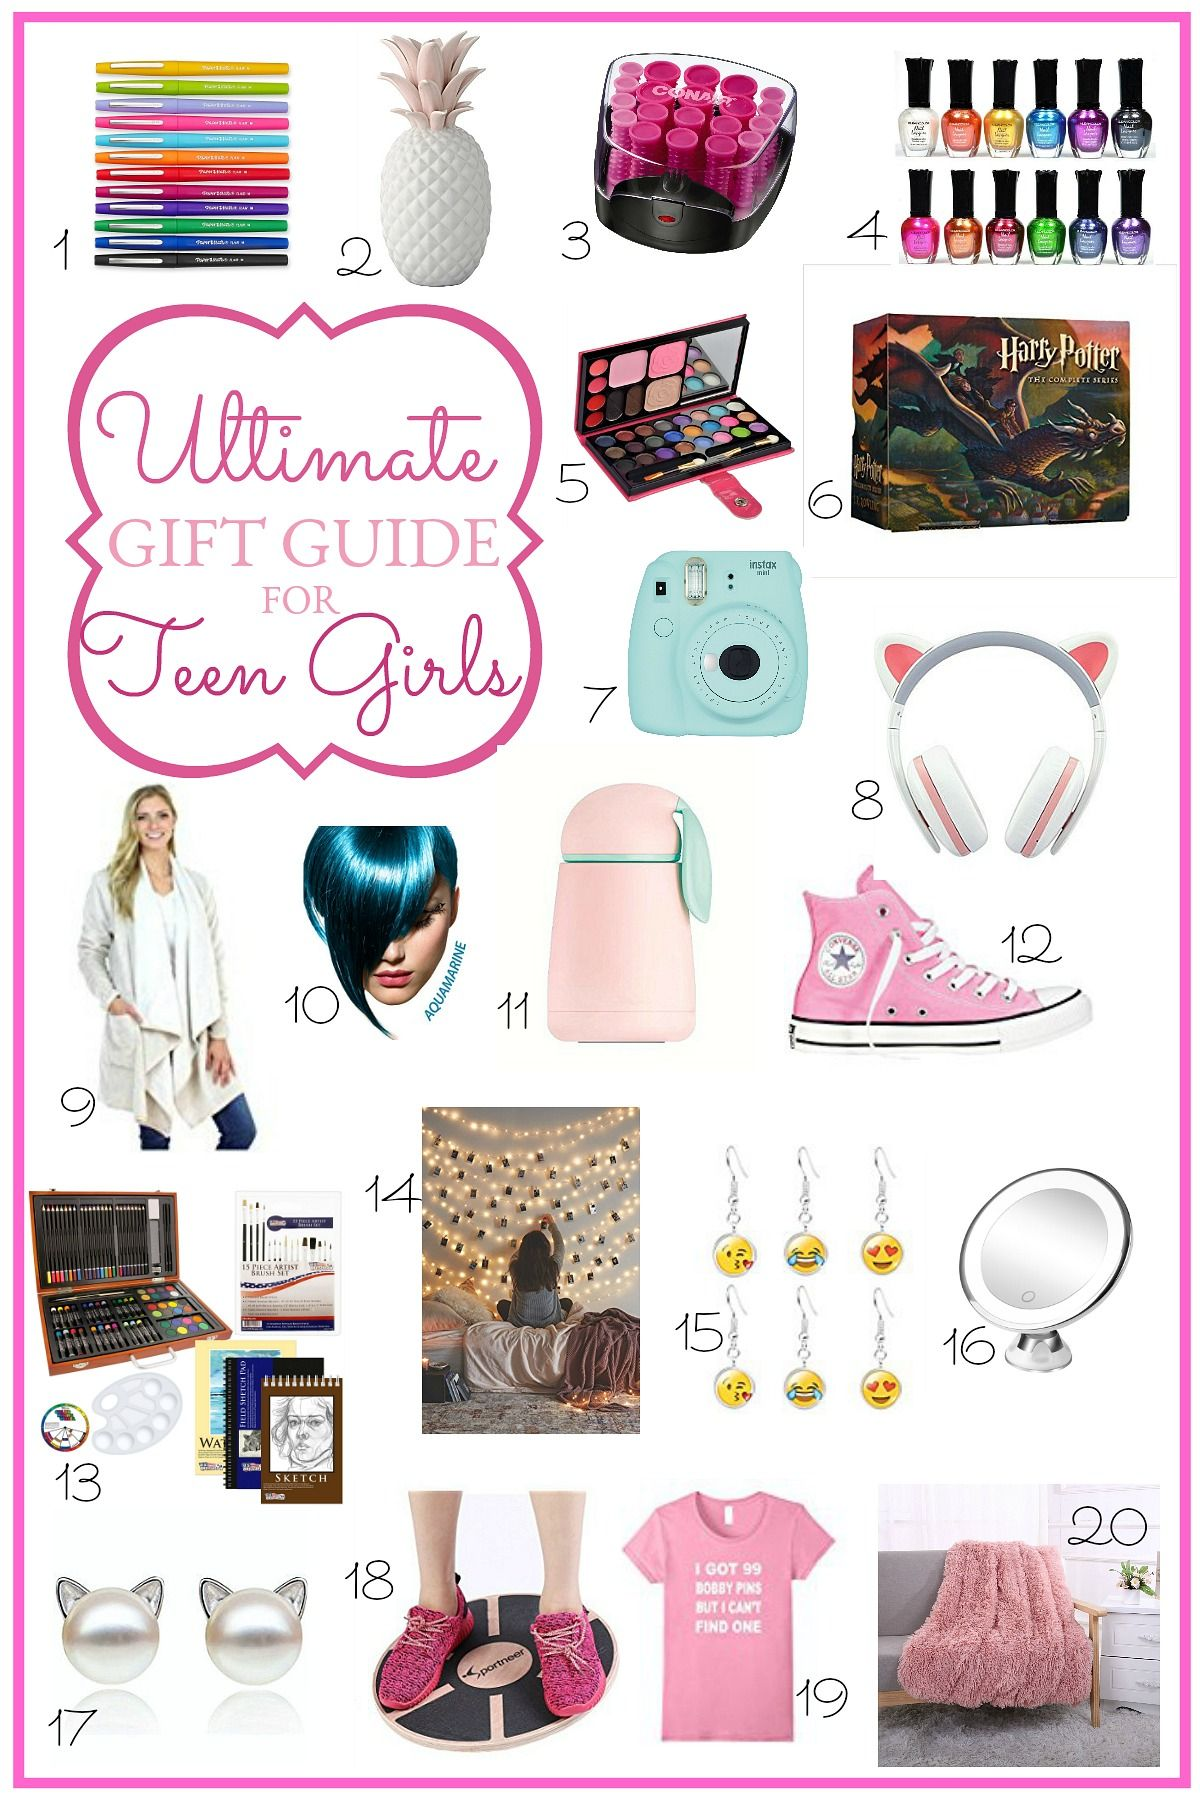 Ultimate Holiday Gift Guide For Teen Girls Chosen By 14 Year Old Christmas Or Birthday Presents Here Is Their Wish List